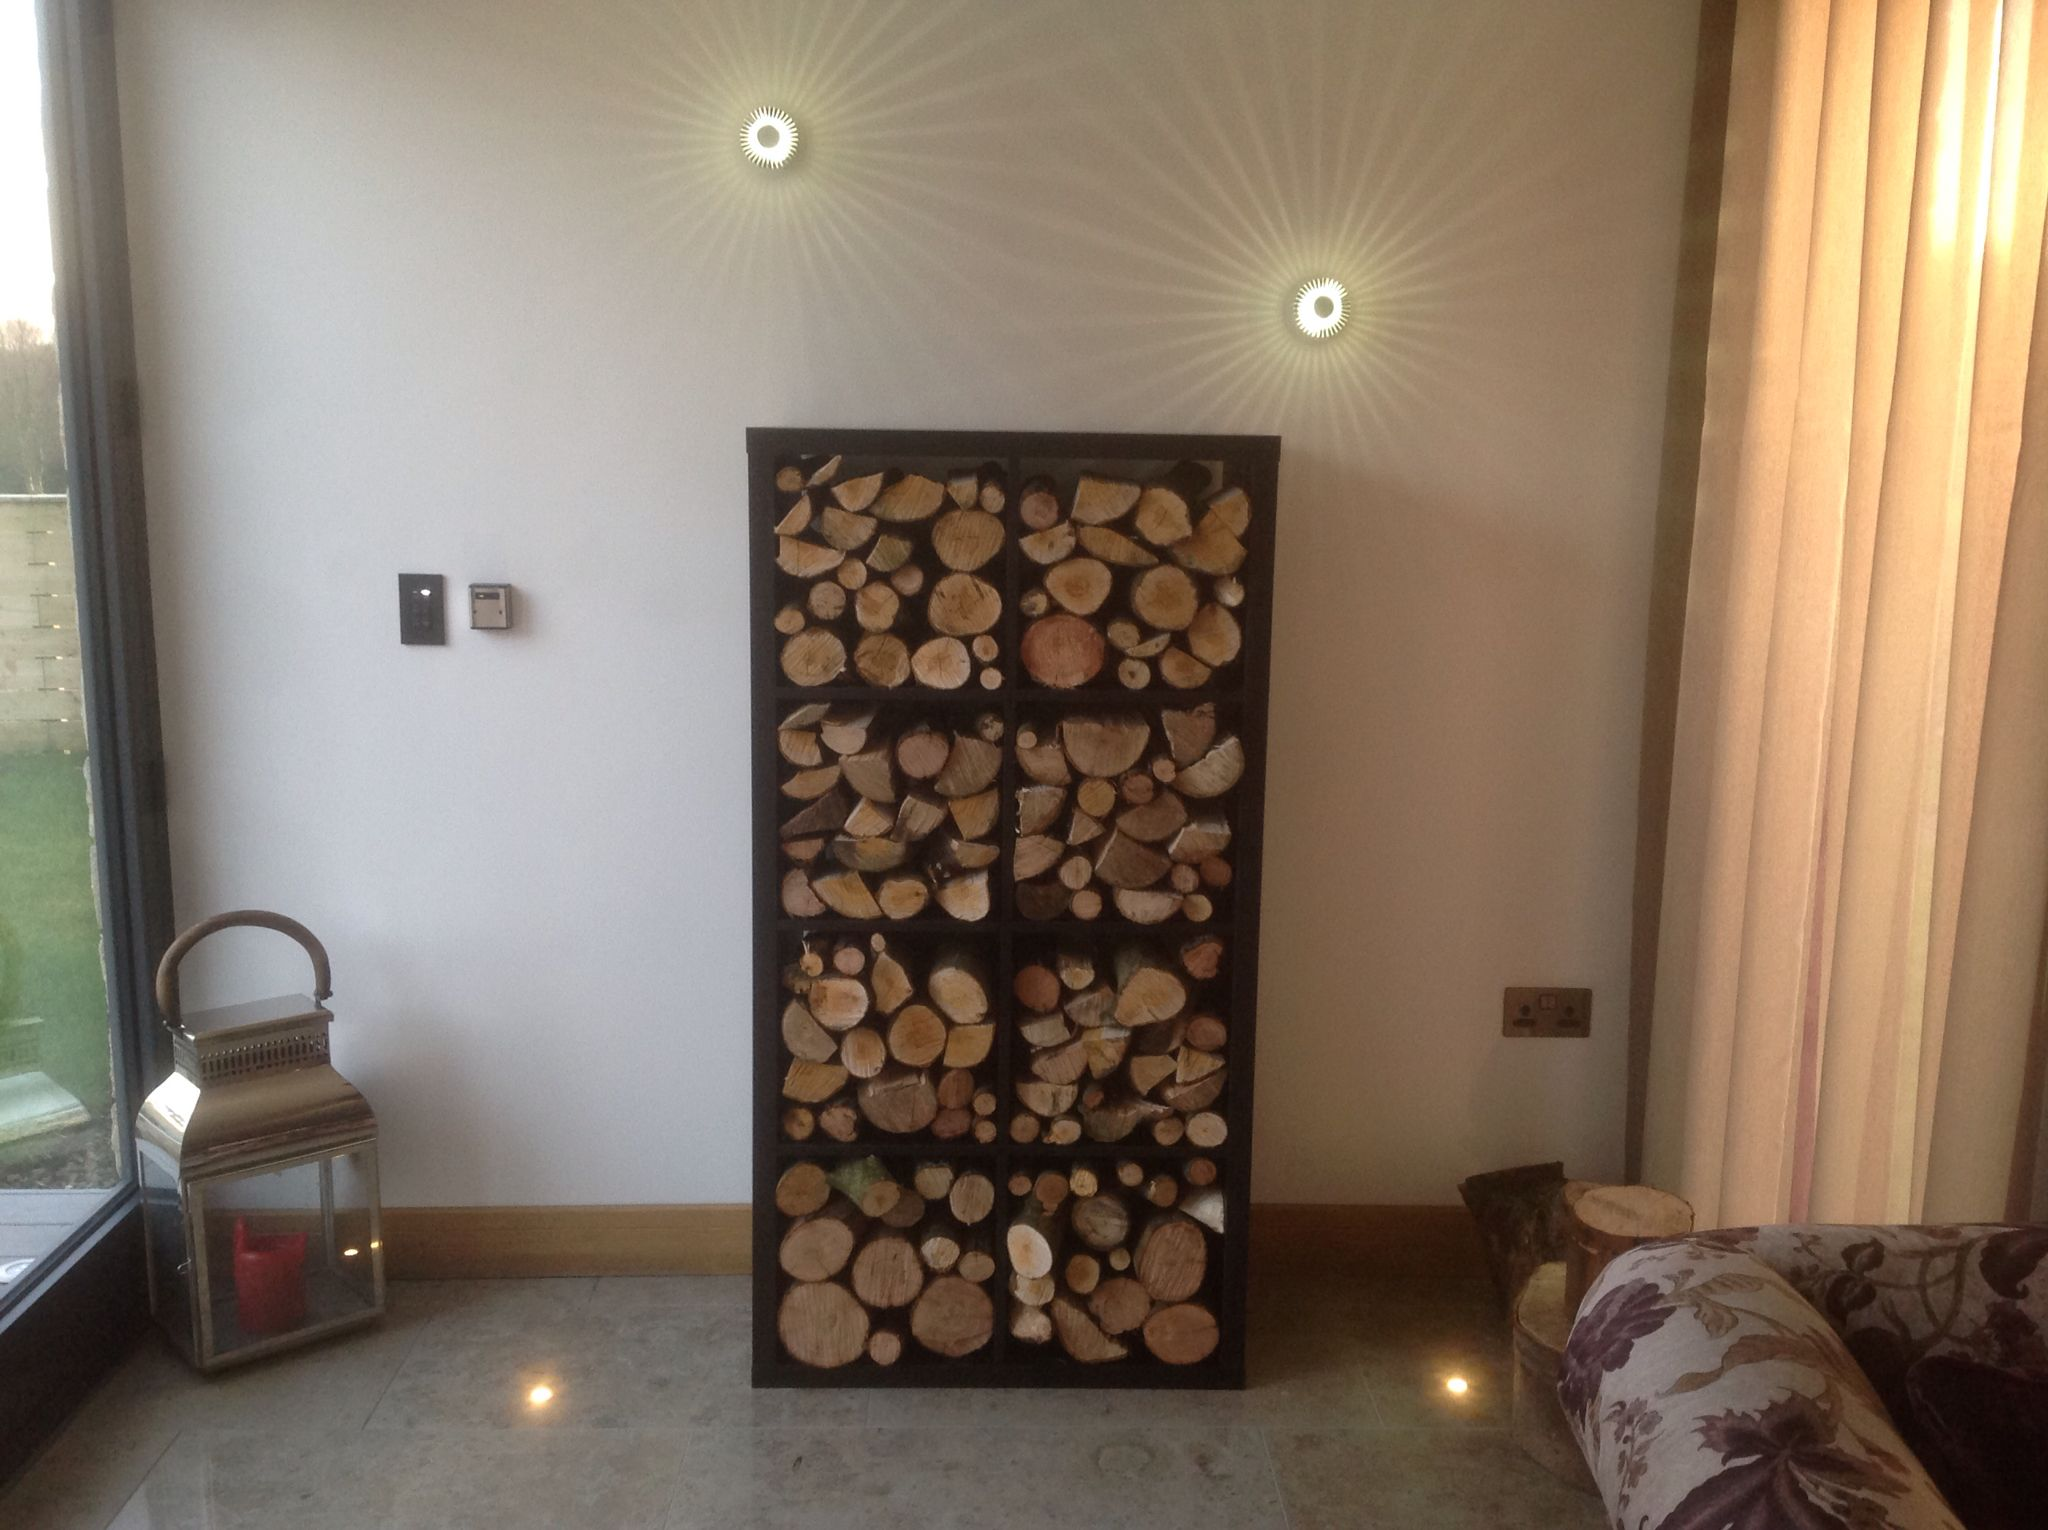 living room firewood holder how to decorate my walls indoor log store thanks ikea shelves 55 looks great